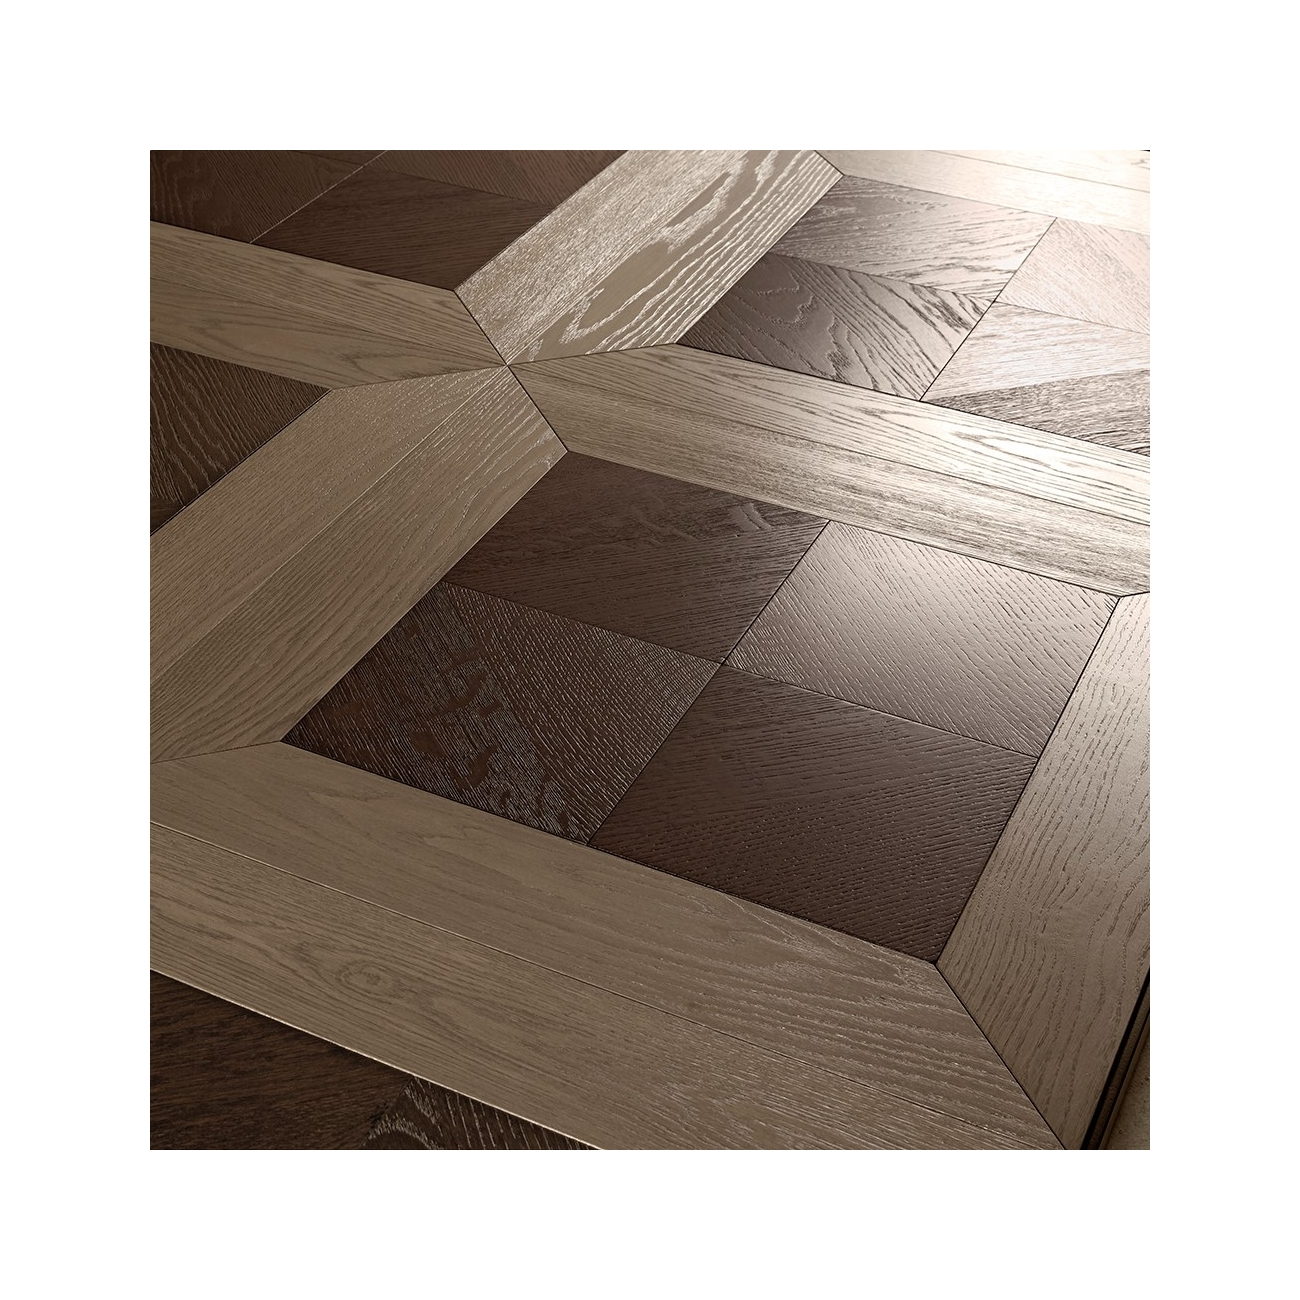 BISAZZA WOOD ATLANTE DELTA